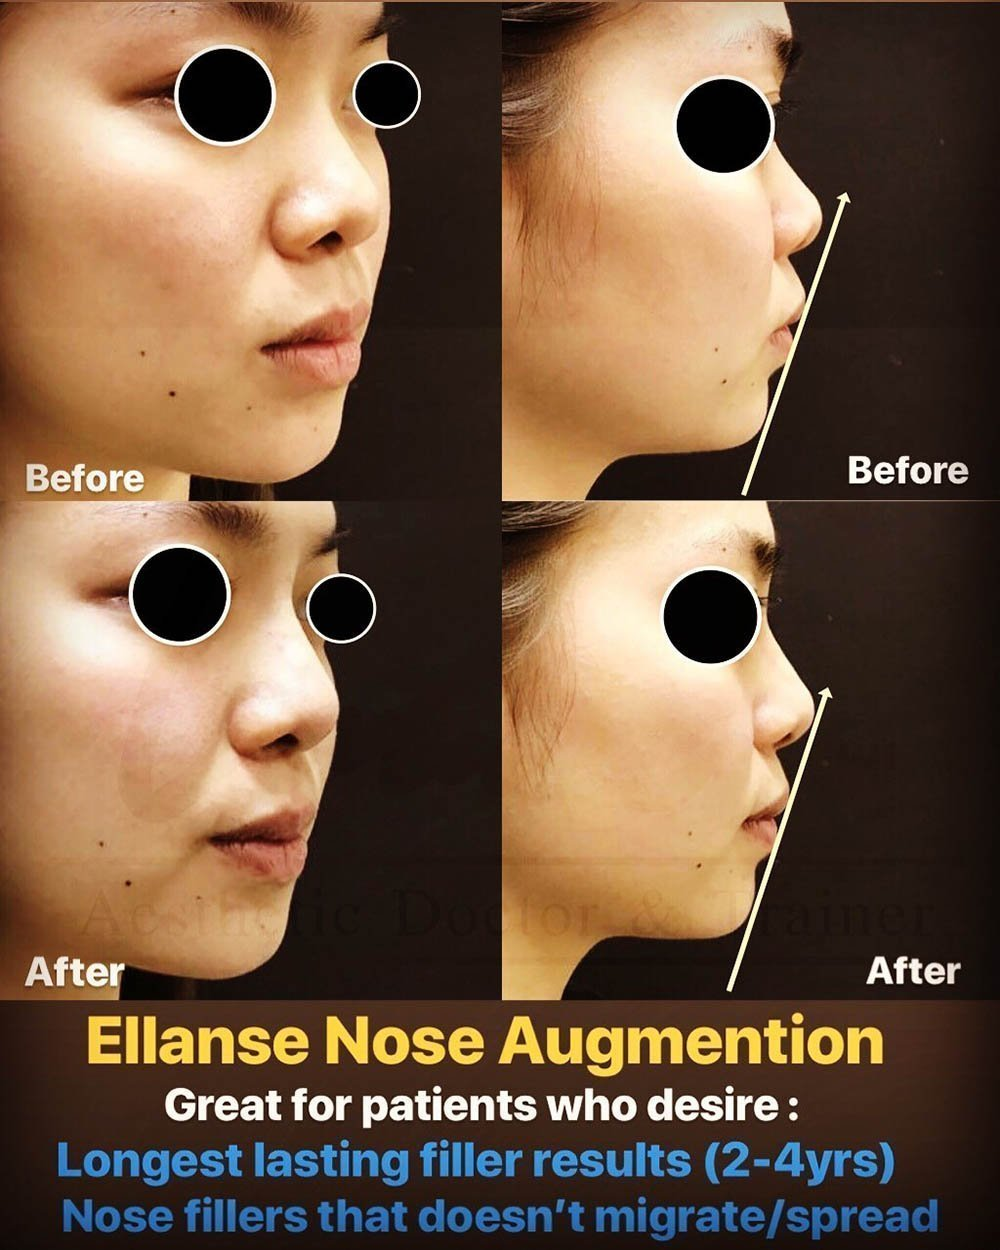 Ellanse nose augmentation